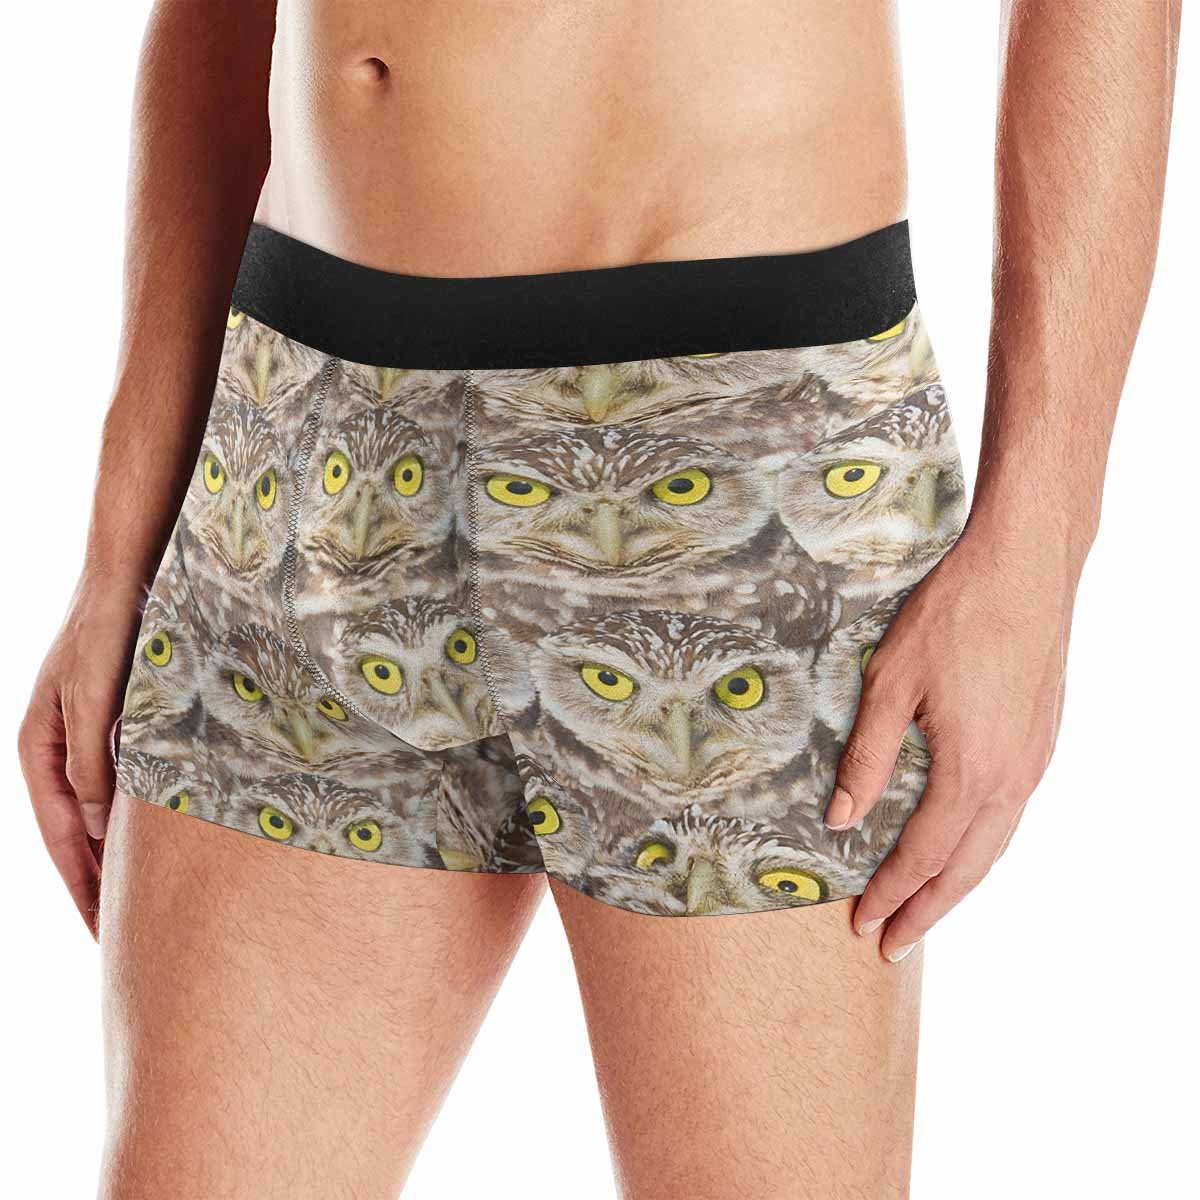 INTERESTPRINT Boxer Briefs Mens Underwear Burrowing Owls Group Portrait XS-3XL